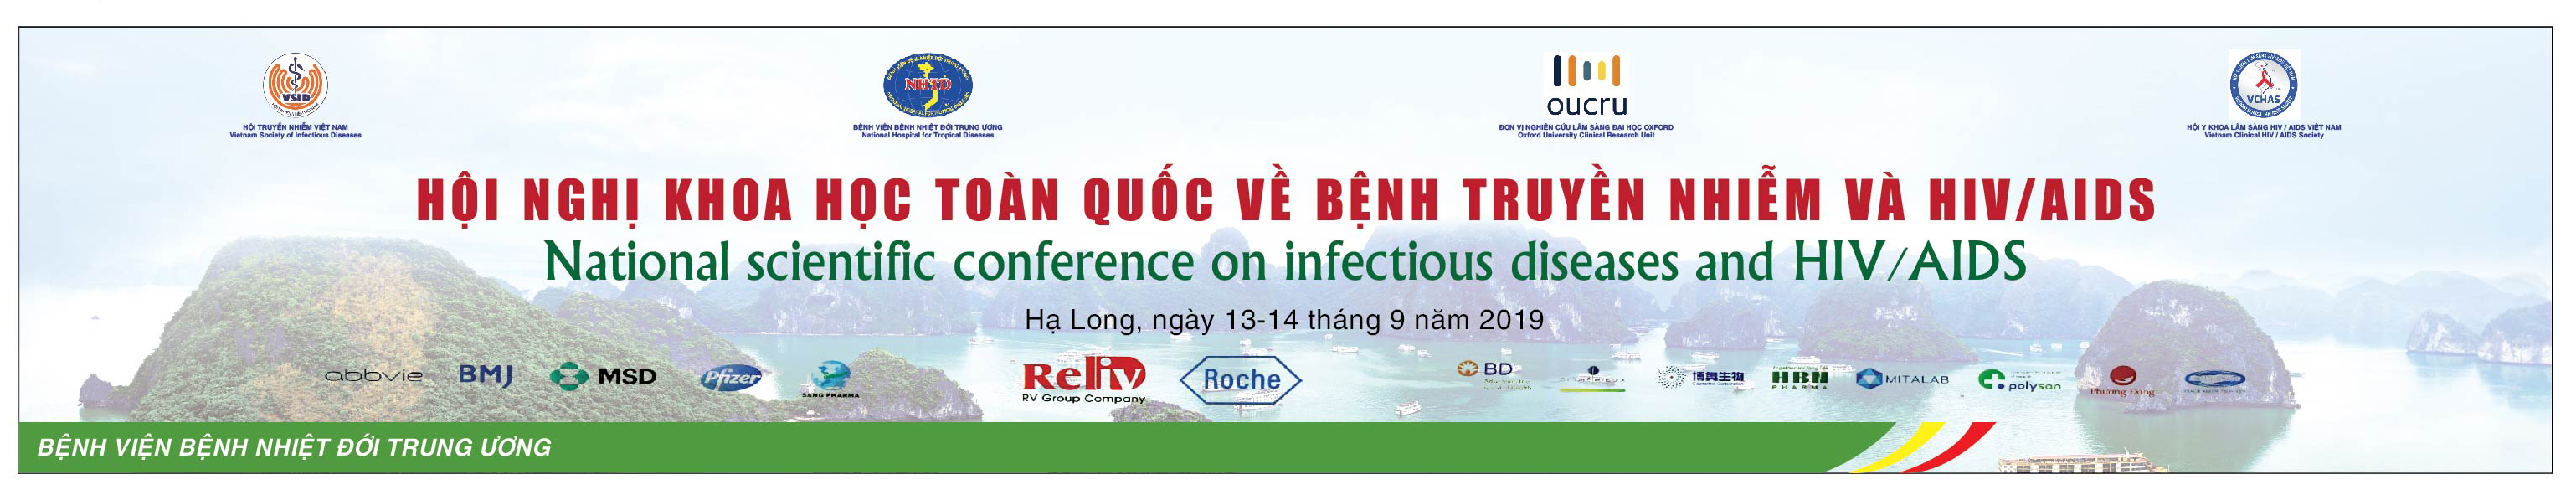 NATIONAL SCIENTIFIC CONFERENCE ON INFECTIOUS DISEASES AND HIV/AIDS IN 2019